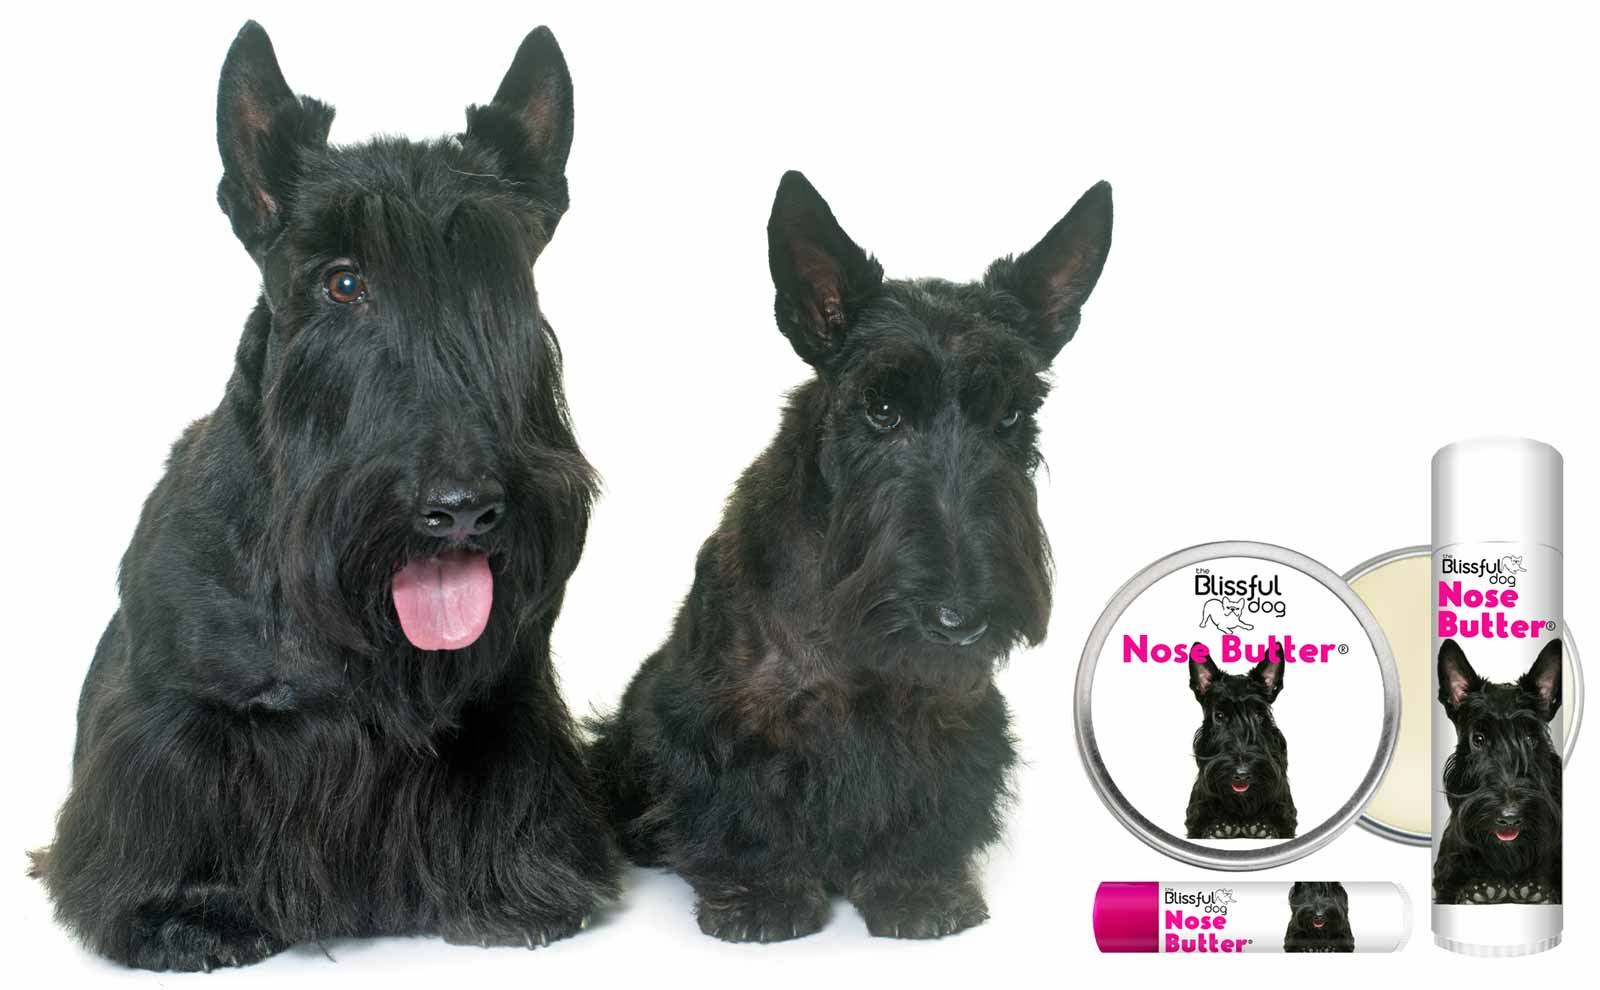 Scottish Terrier dogs